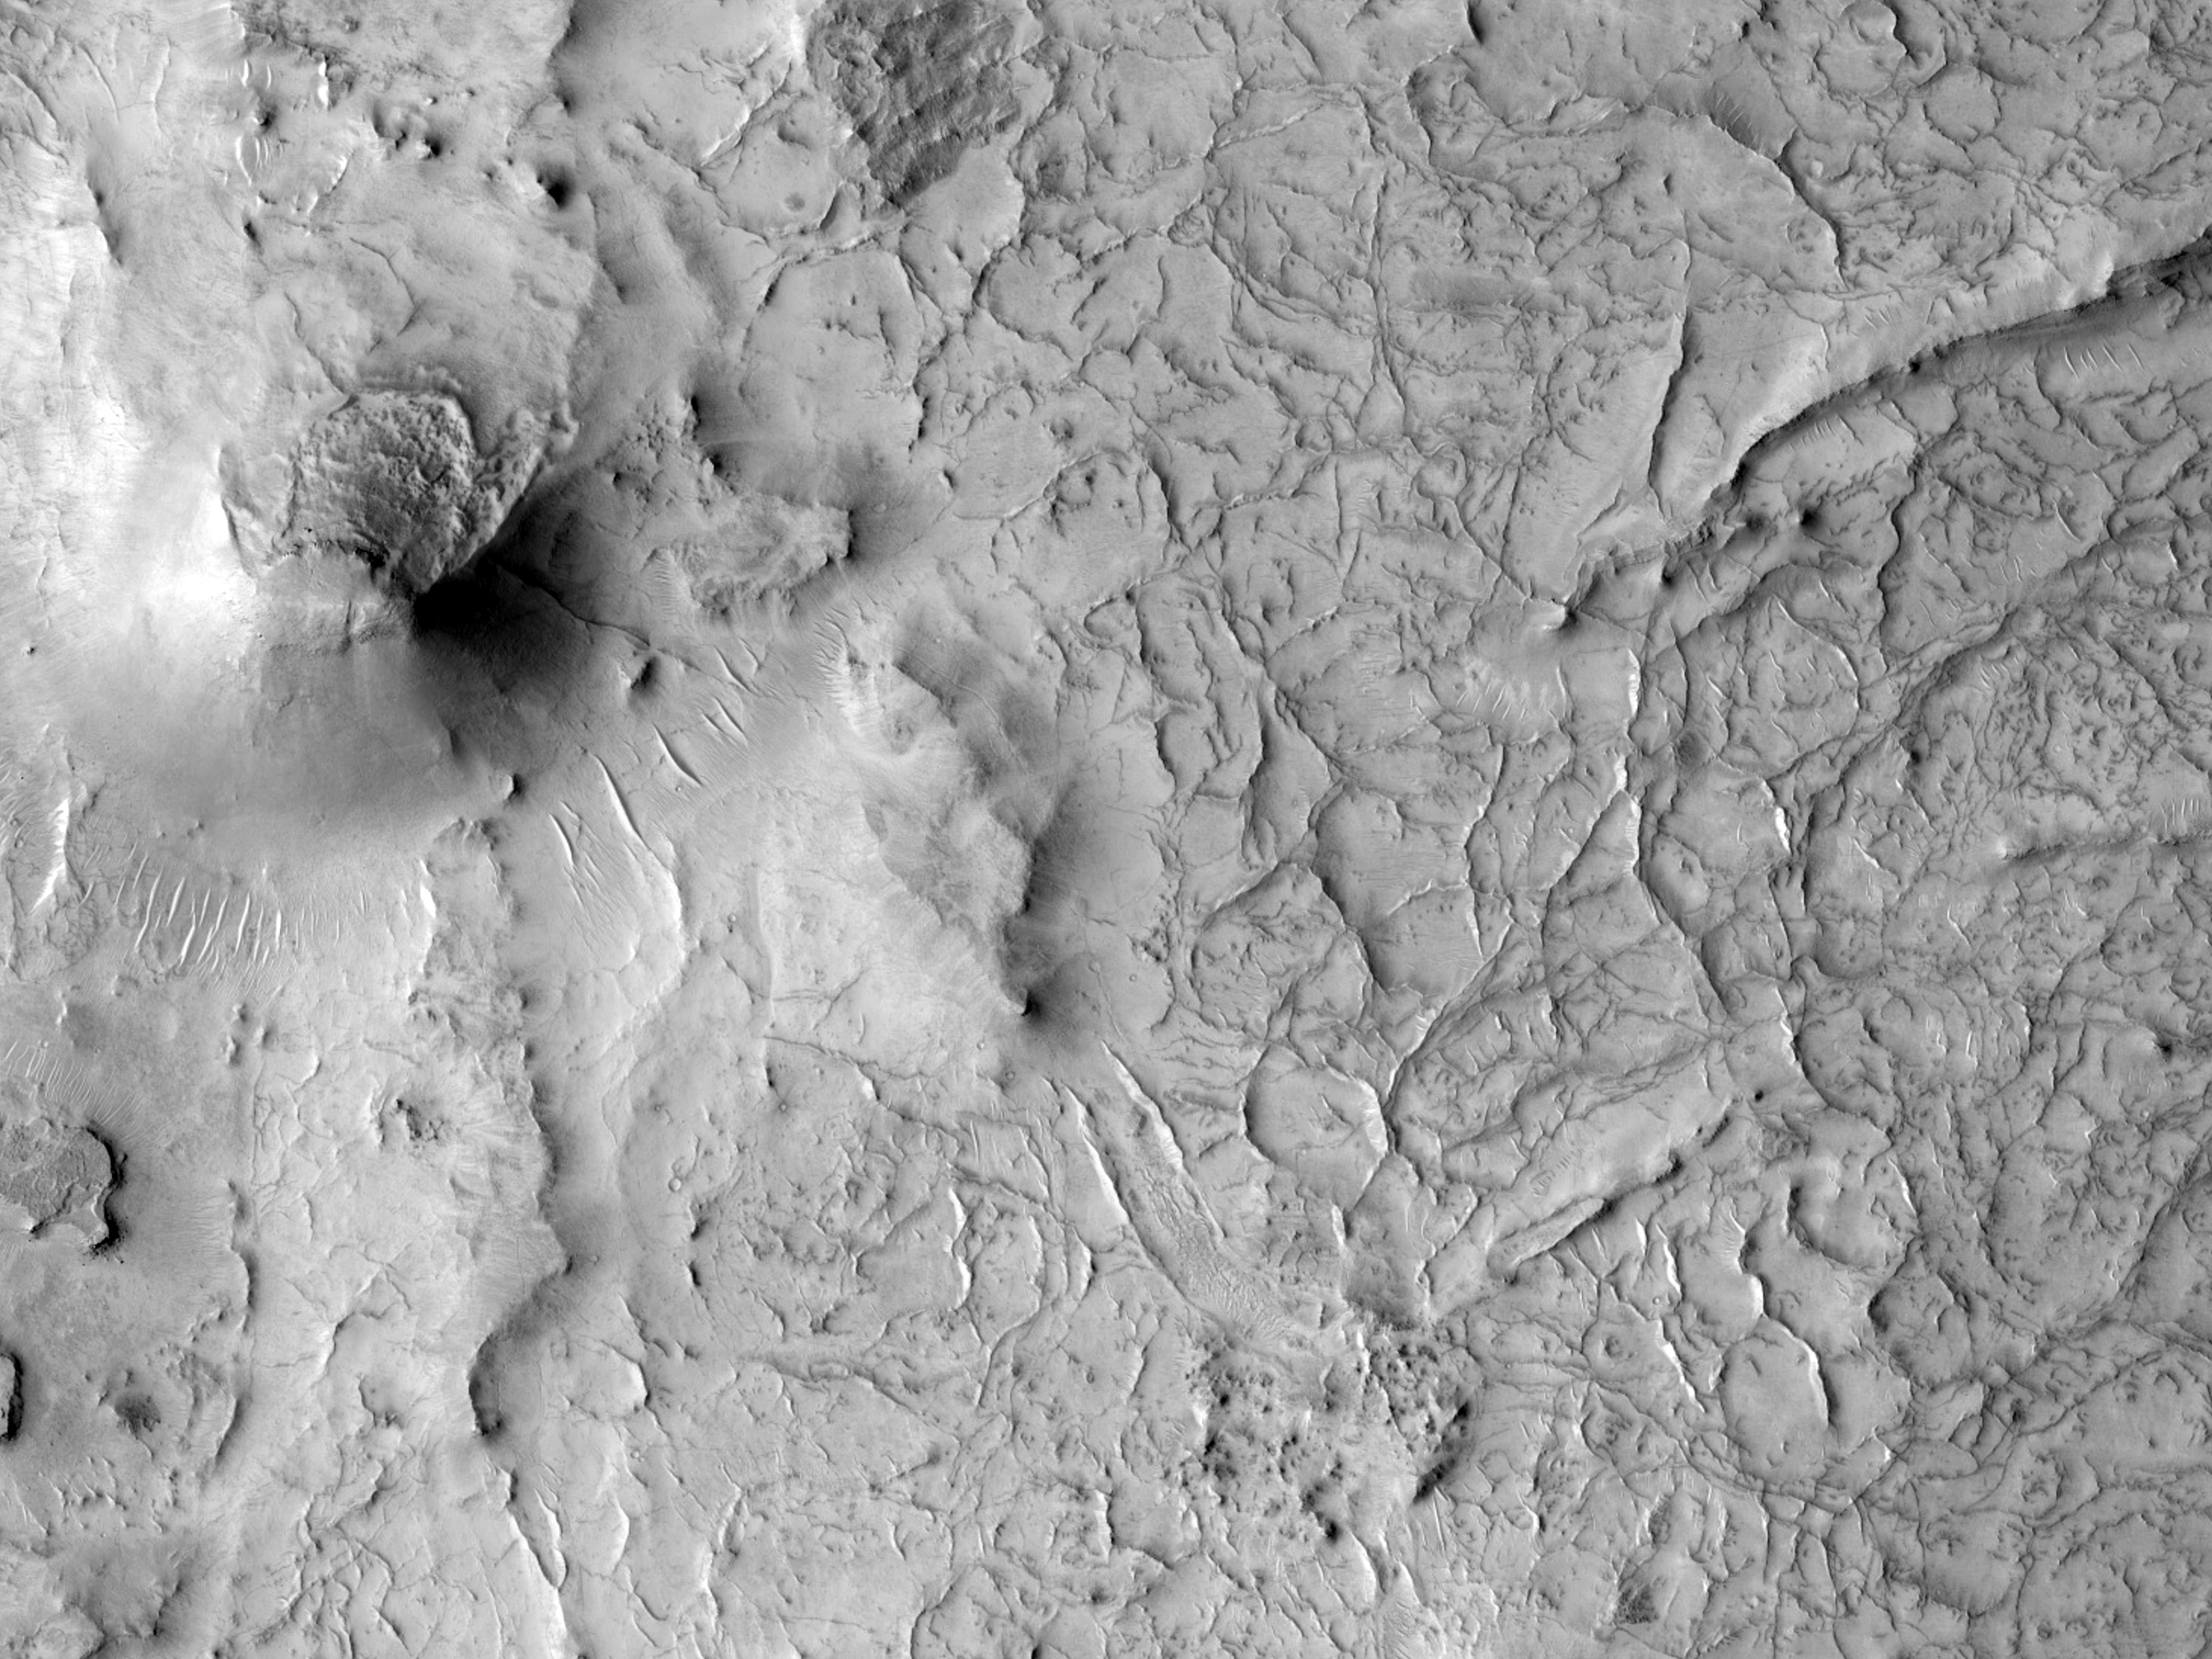 Layers and Ridges along Huo Hsing Vallis